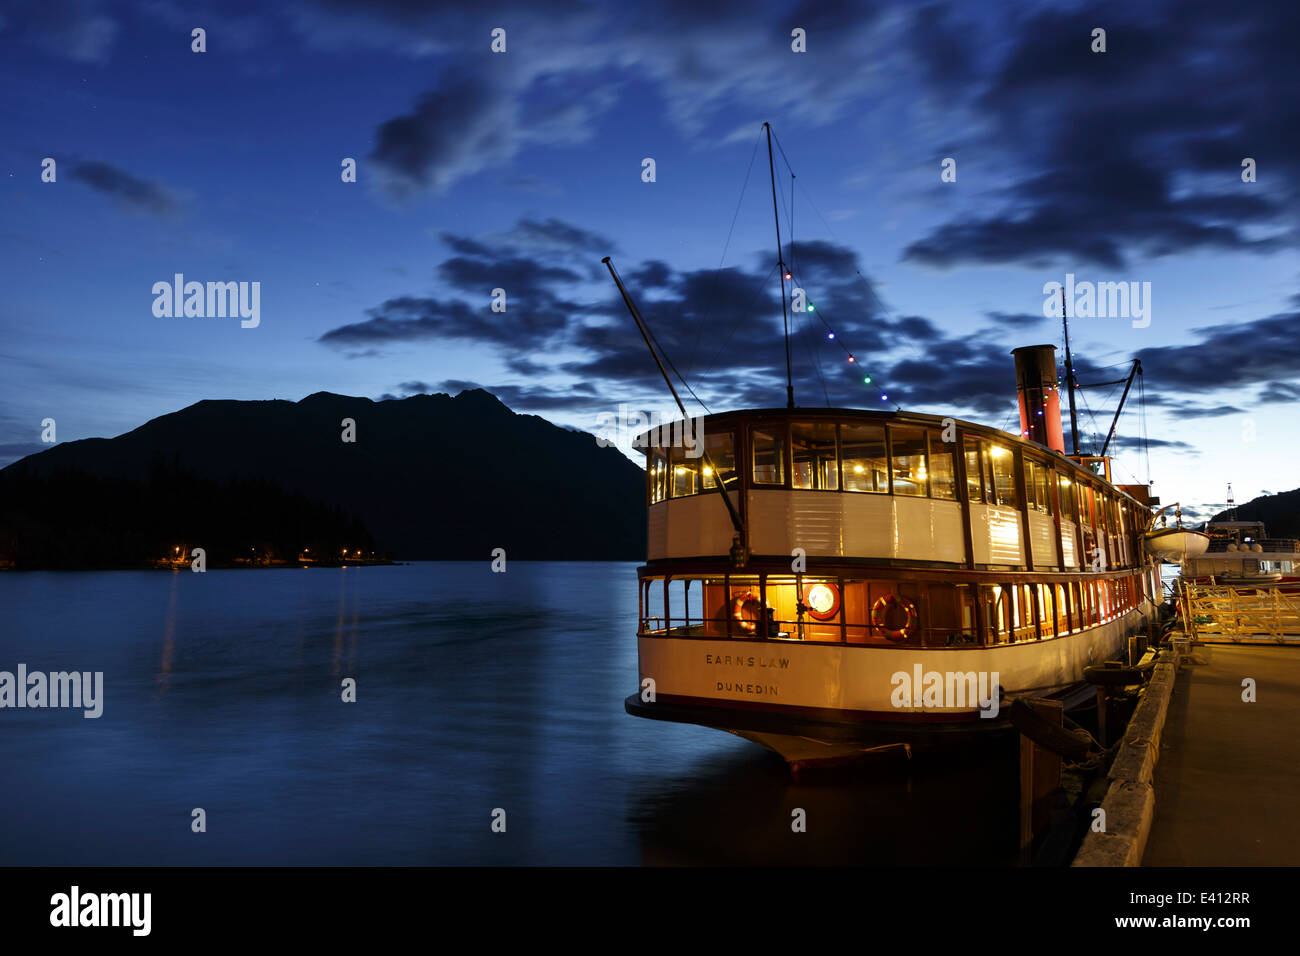 New Zealand, Queenstown, lighted passenger ship lying at quai - Stock Image